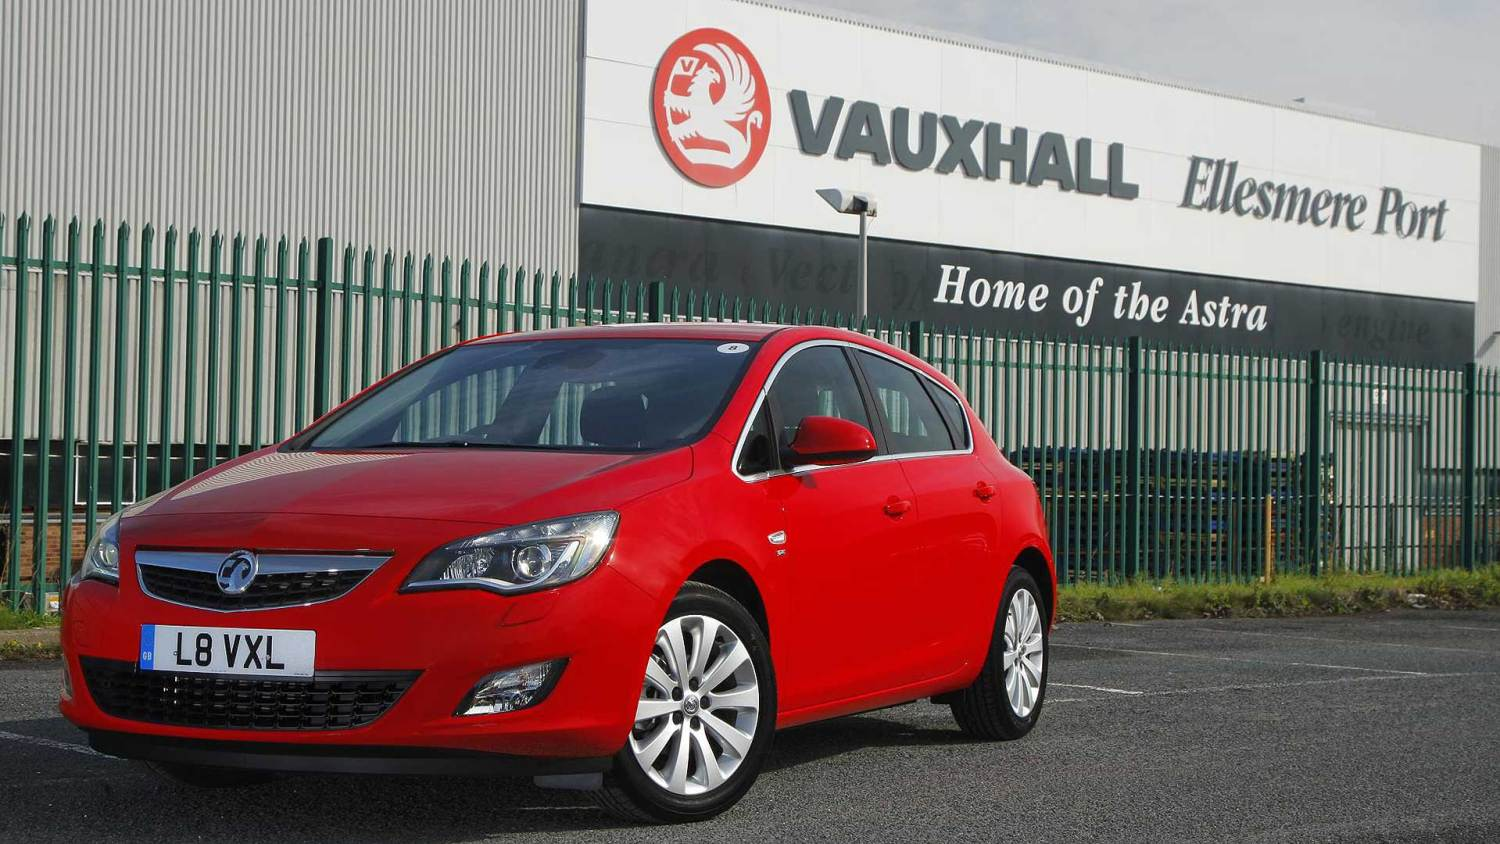 Ellesmere Port - Home of the Vauxhall Astra